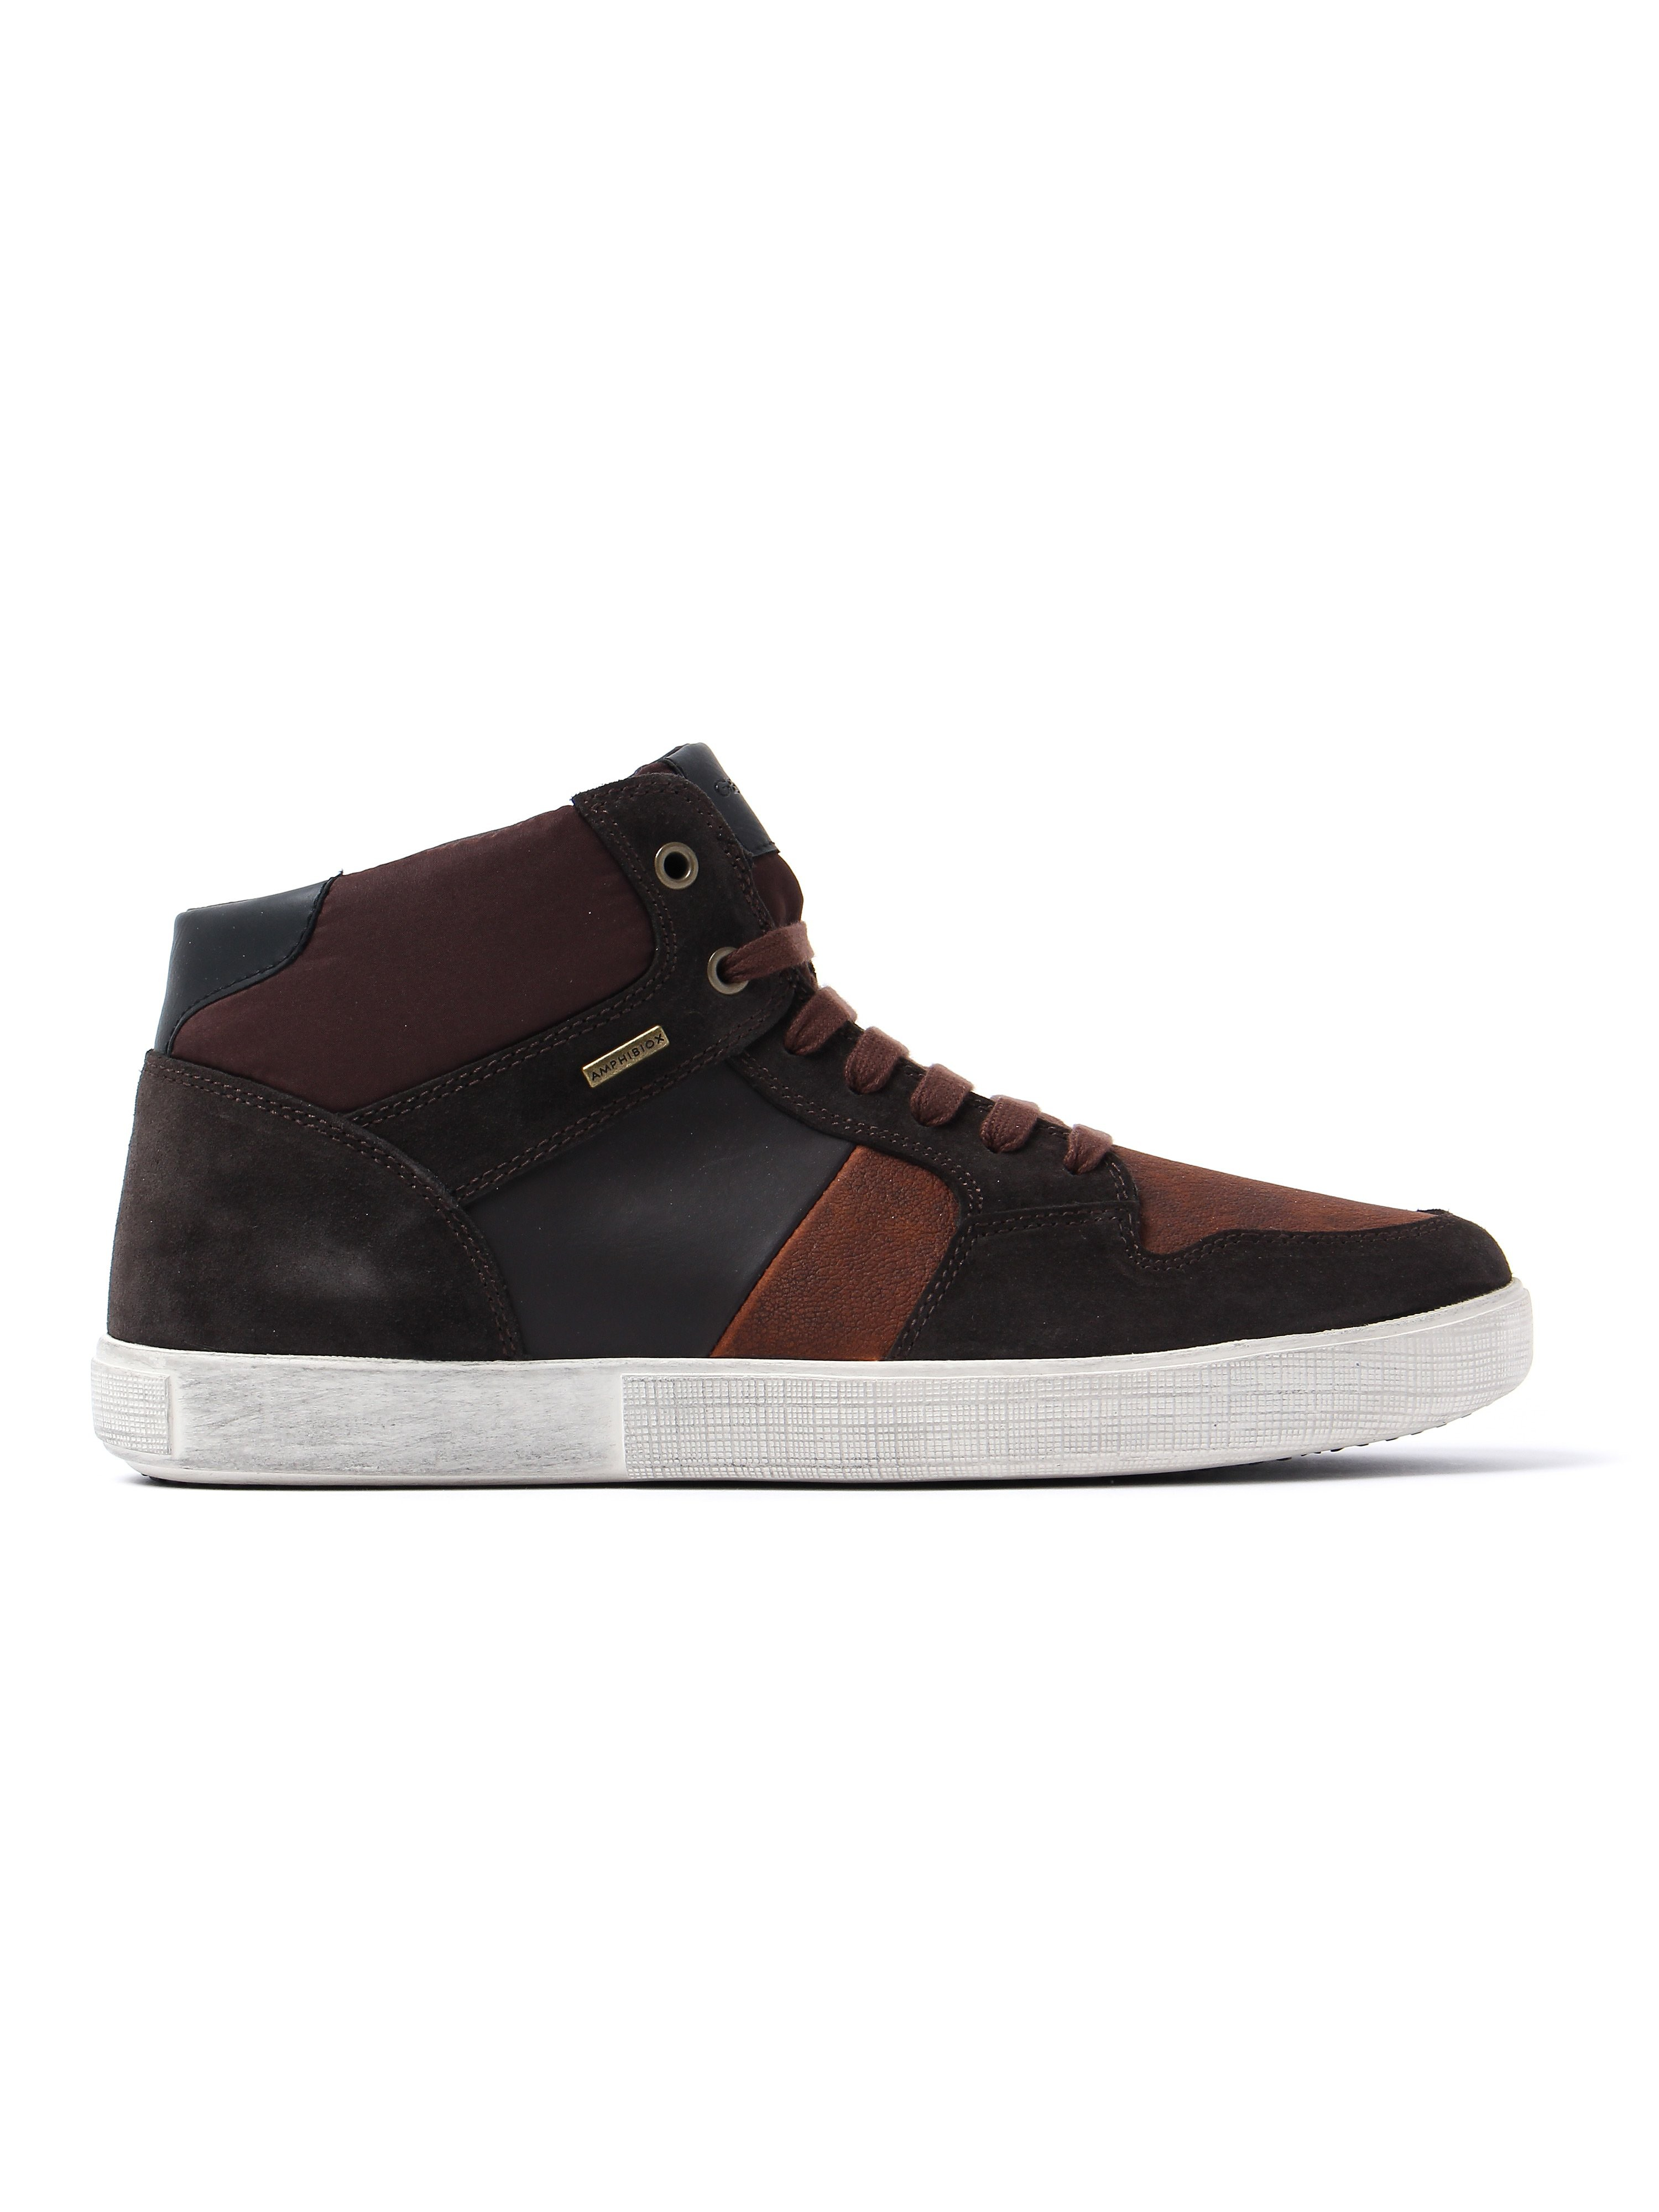 Geox Men's Taiki Abx Trainers - Dark Coffee Suede